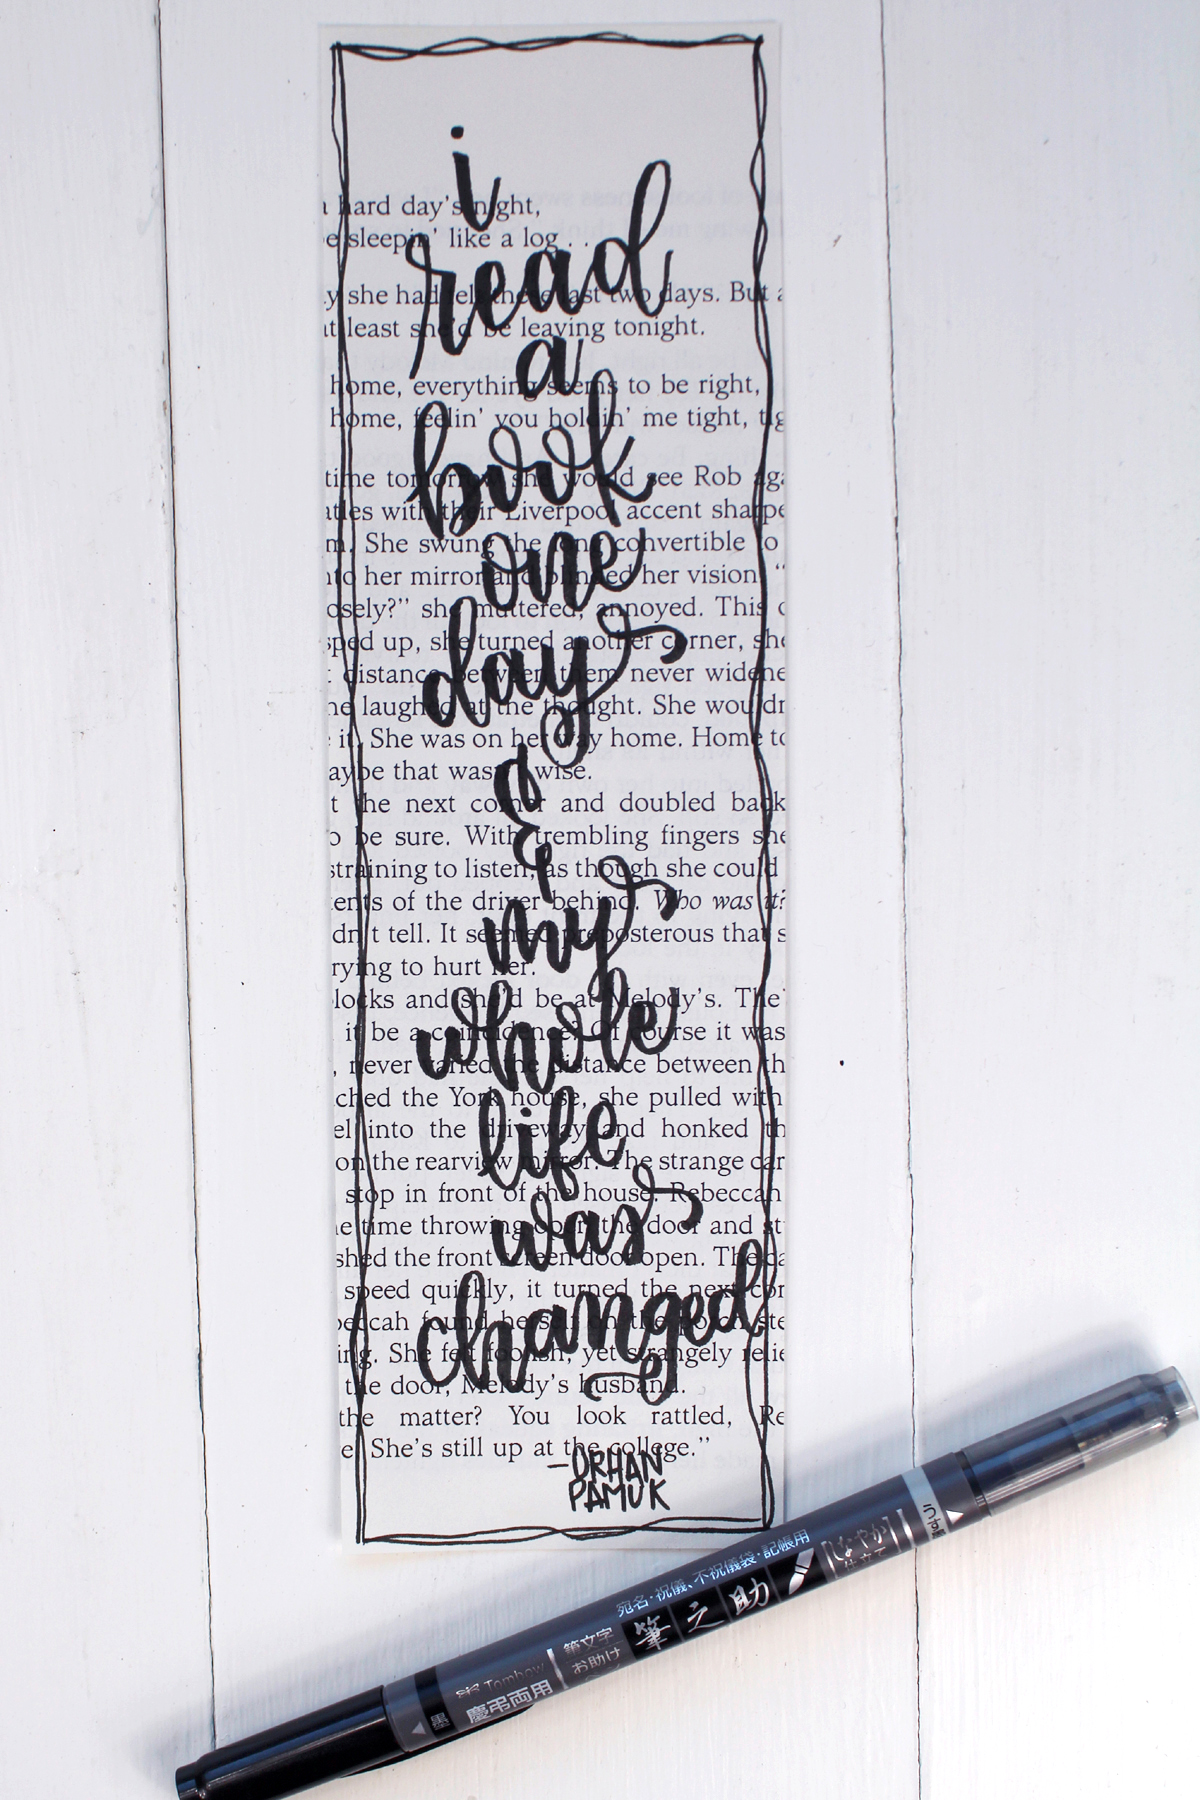 If you are new to hand lettering, check out this post on Faux Calligraphy for a great way to get started.